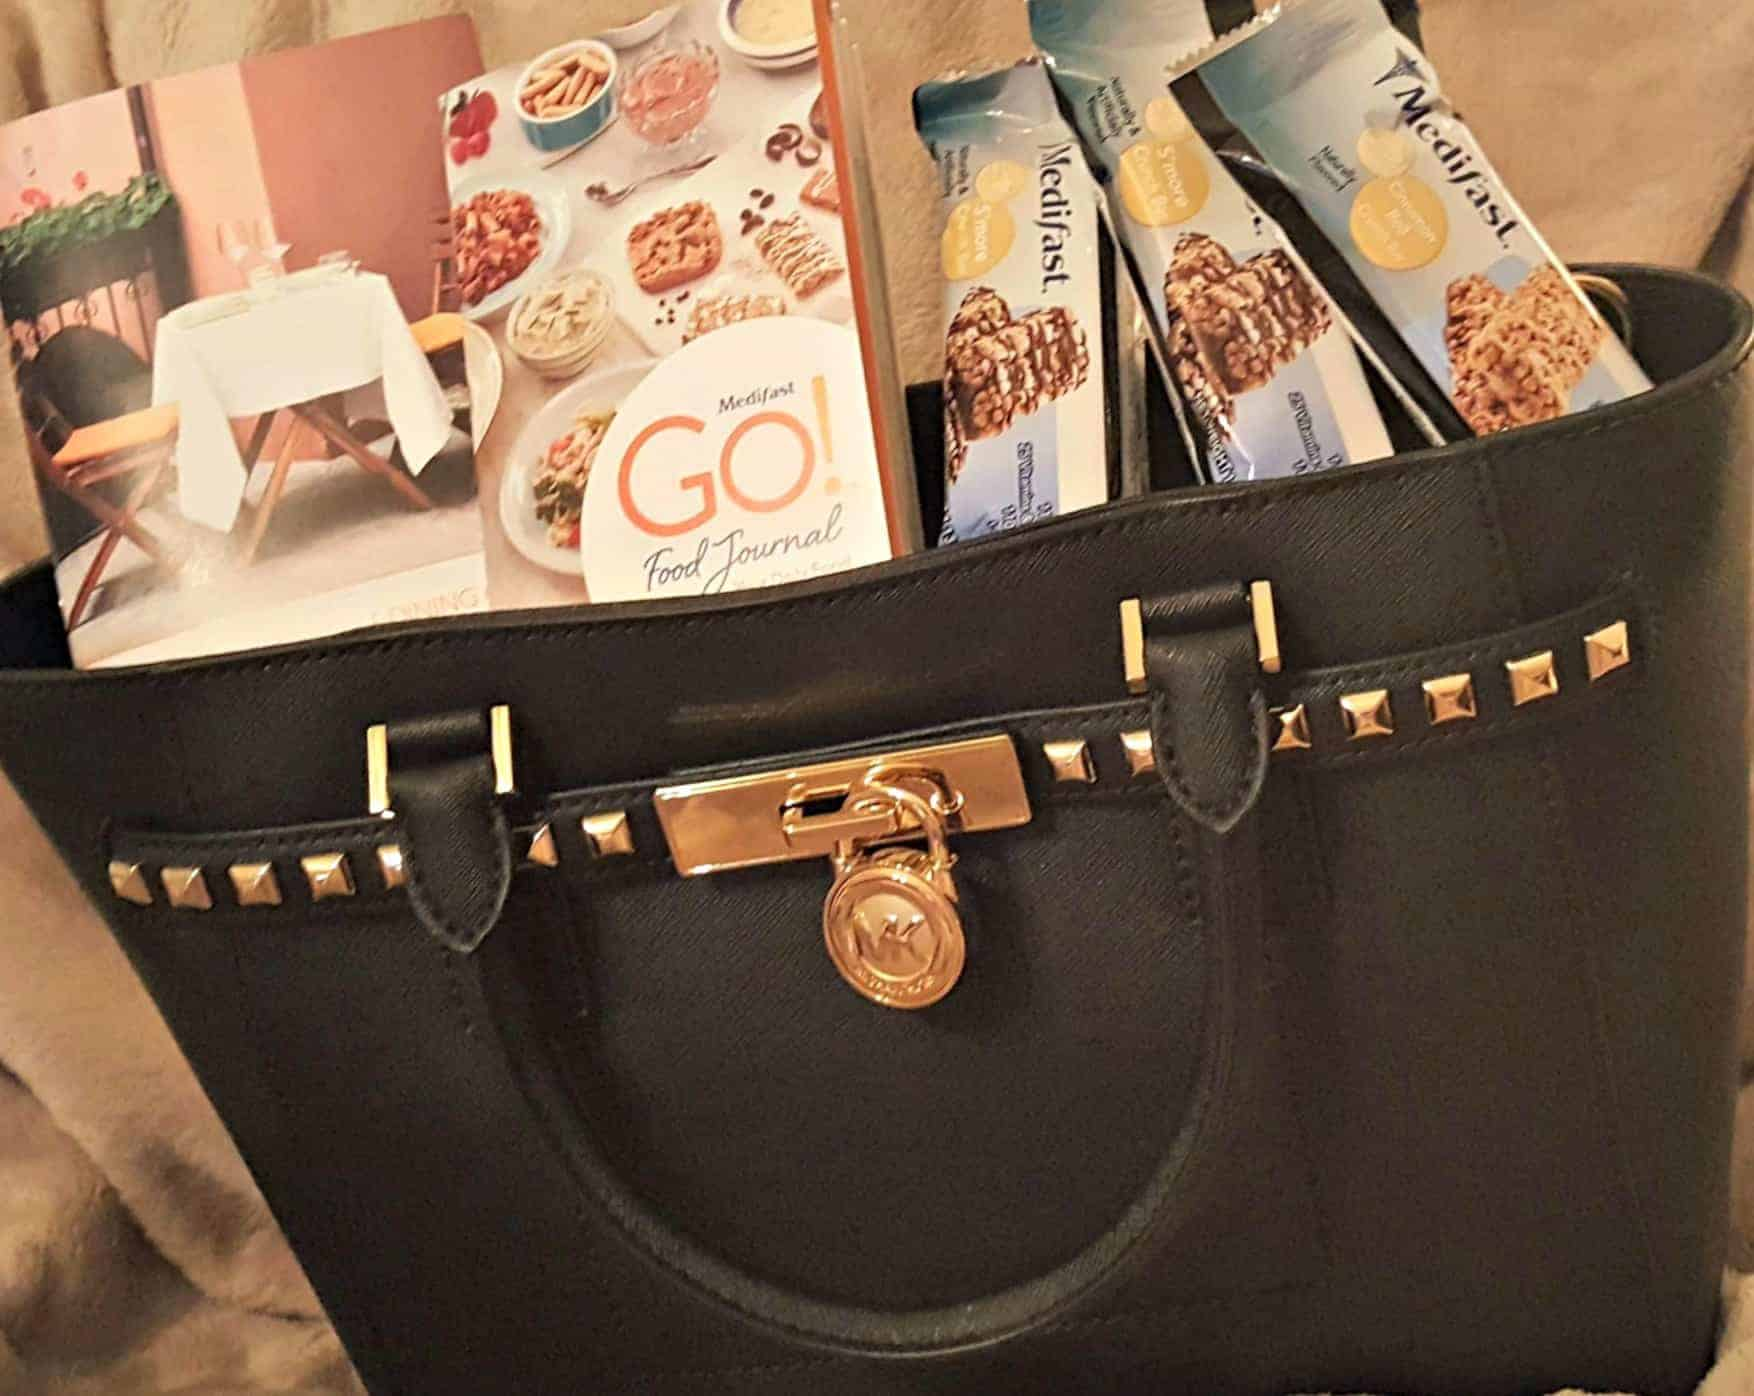 Medifast Go Diet Weight-loss Food Journal and Dining Out Guide Michael Kors Handbag